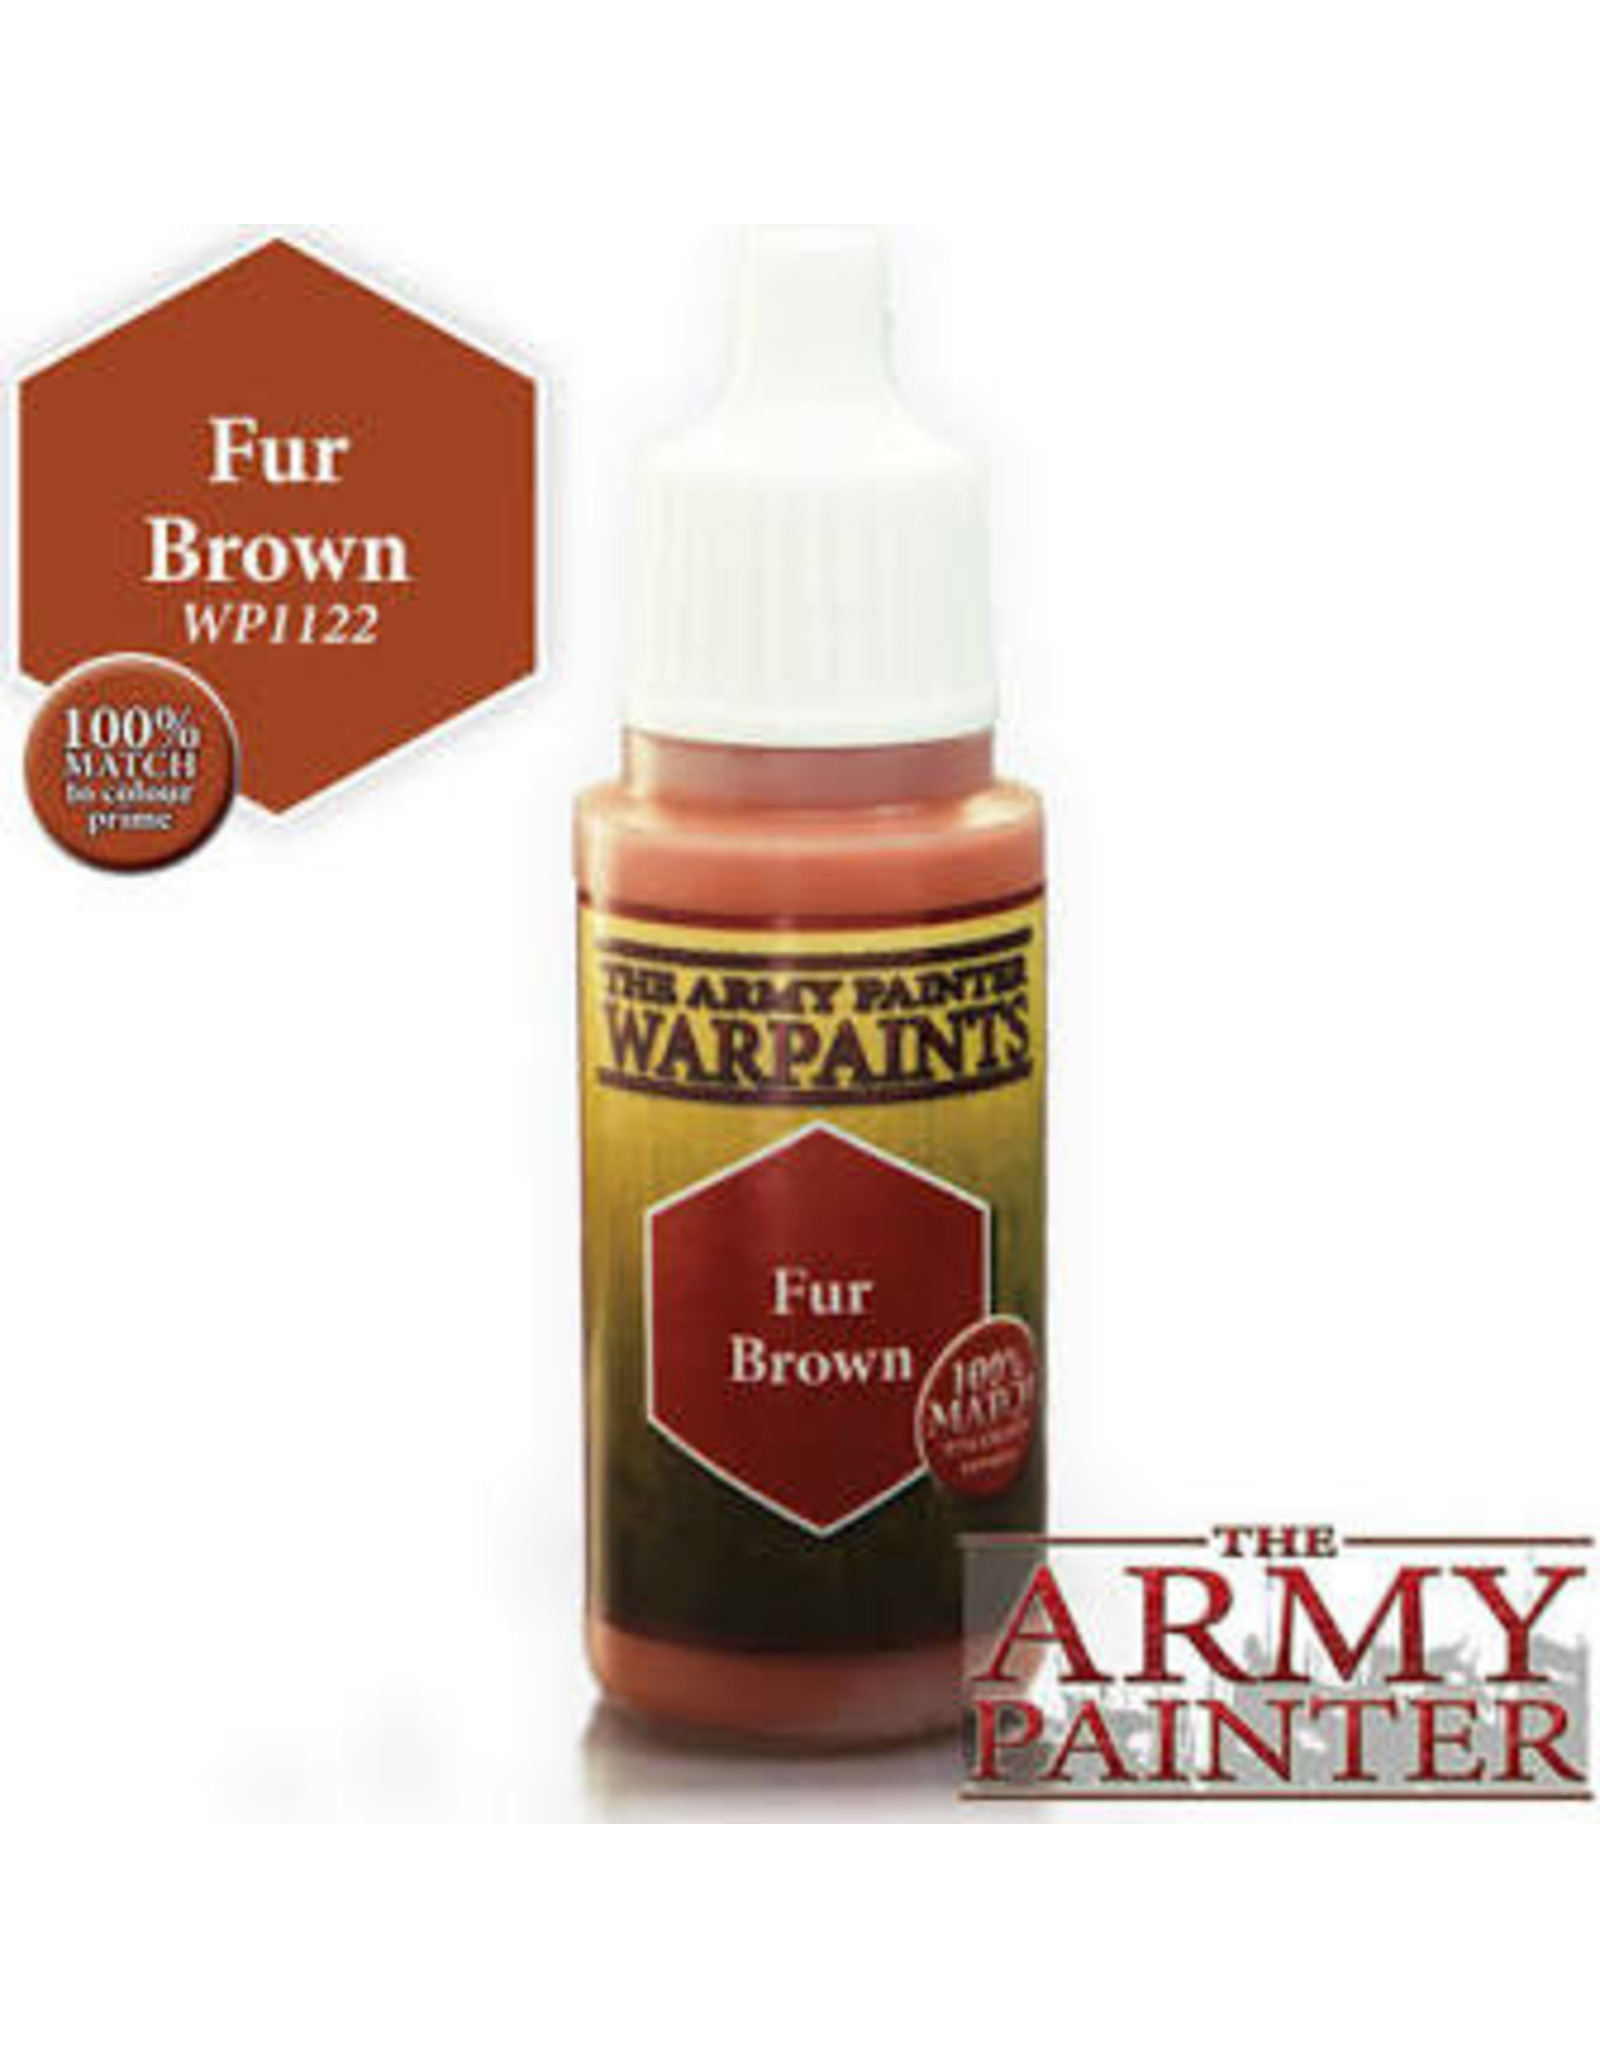 Army Painter Army Painter: Fur Brown